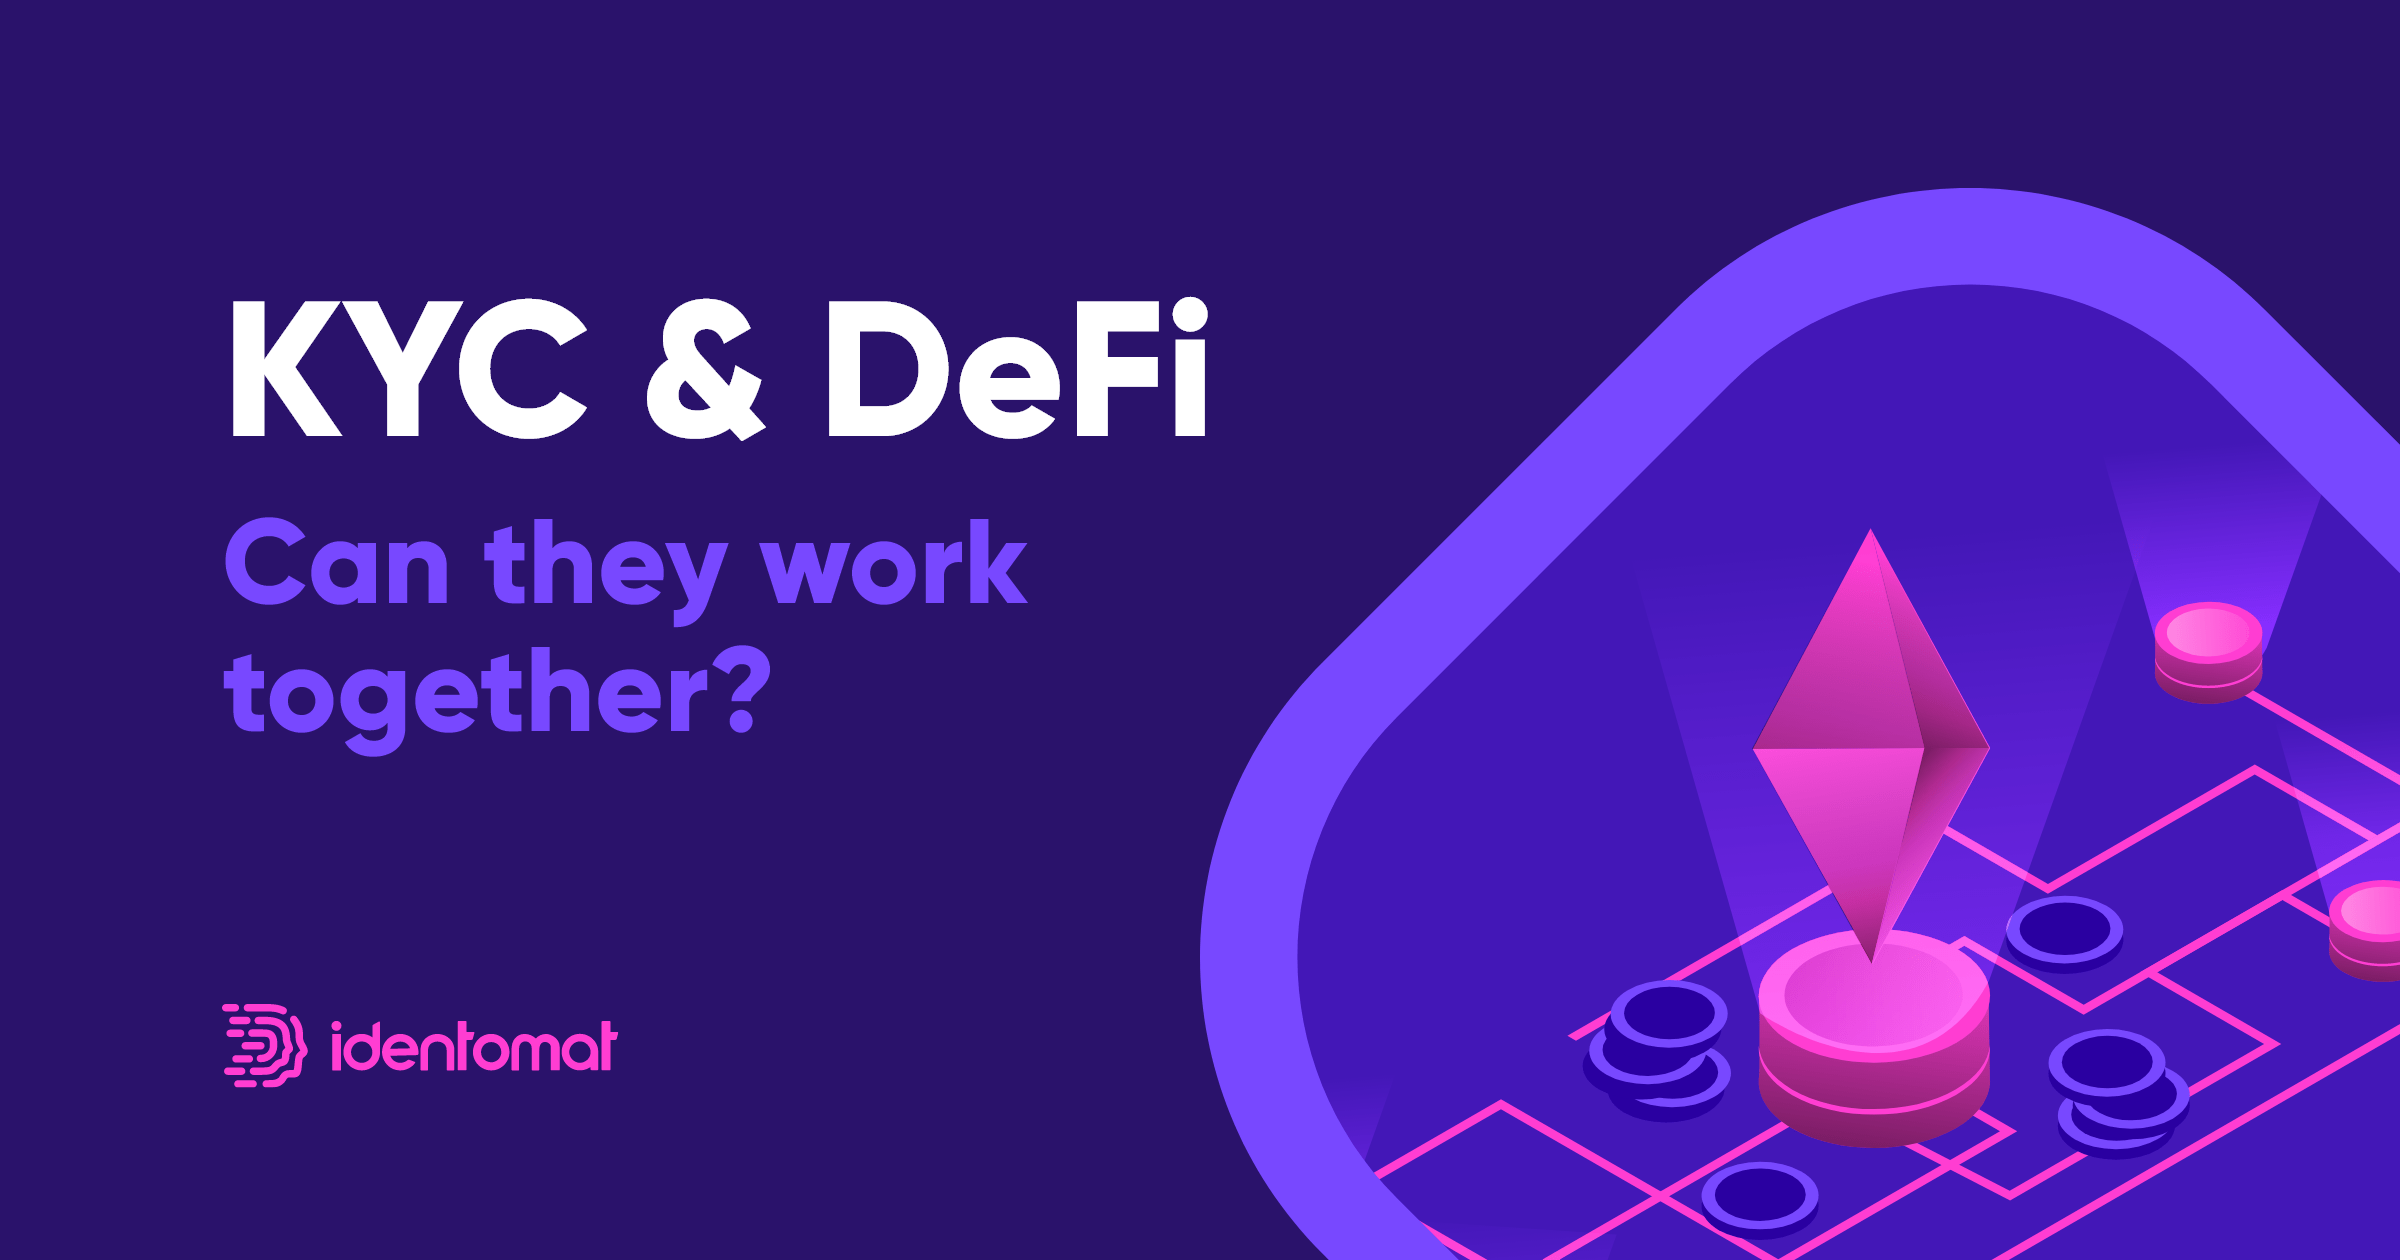 KYC & DeFi: Can They Work Together?